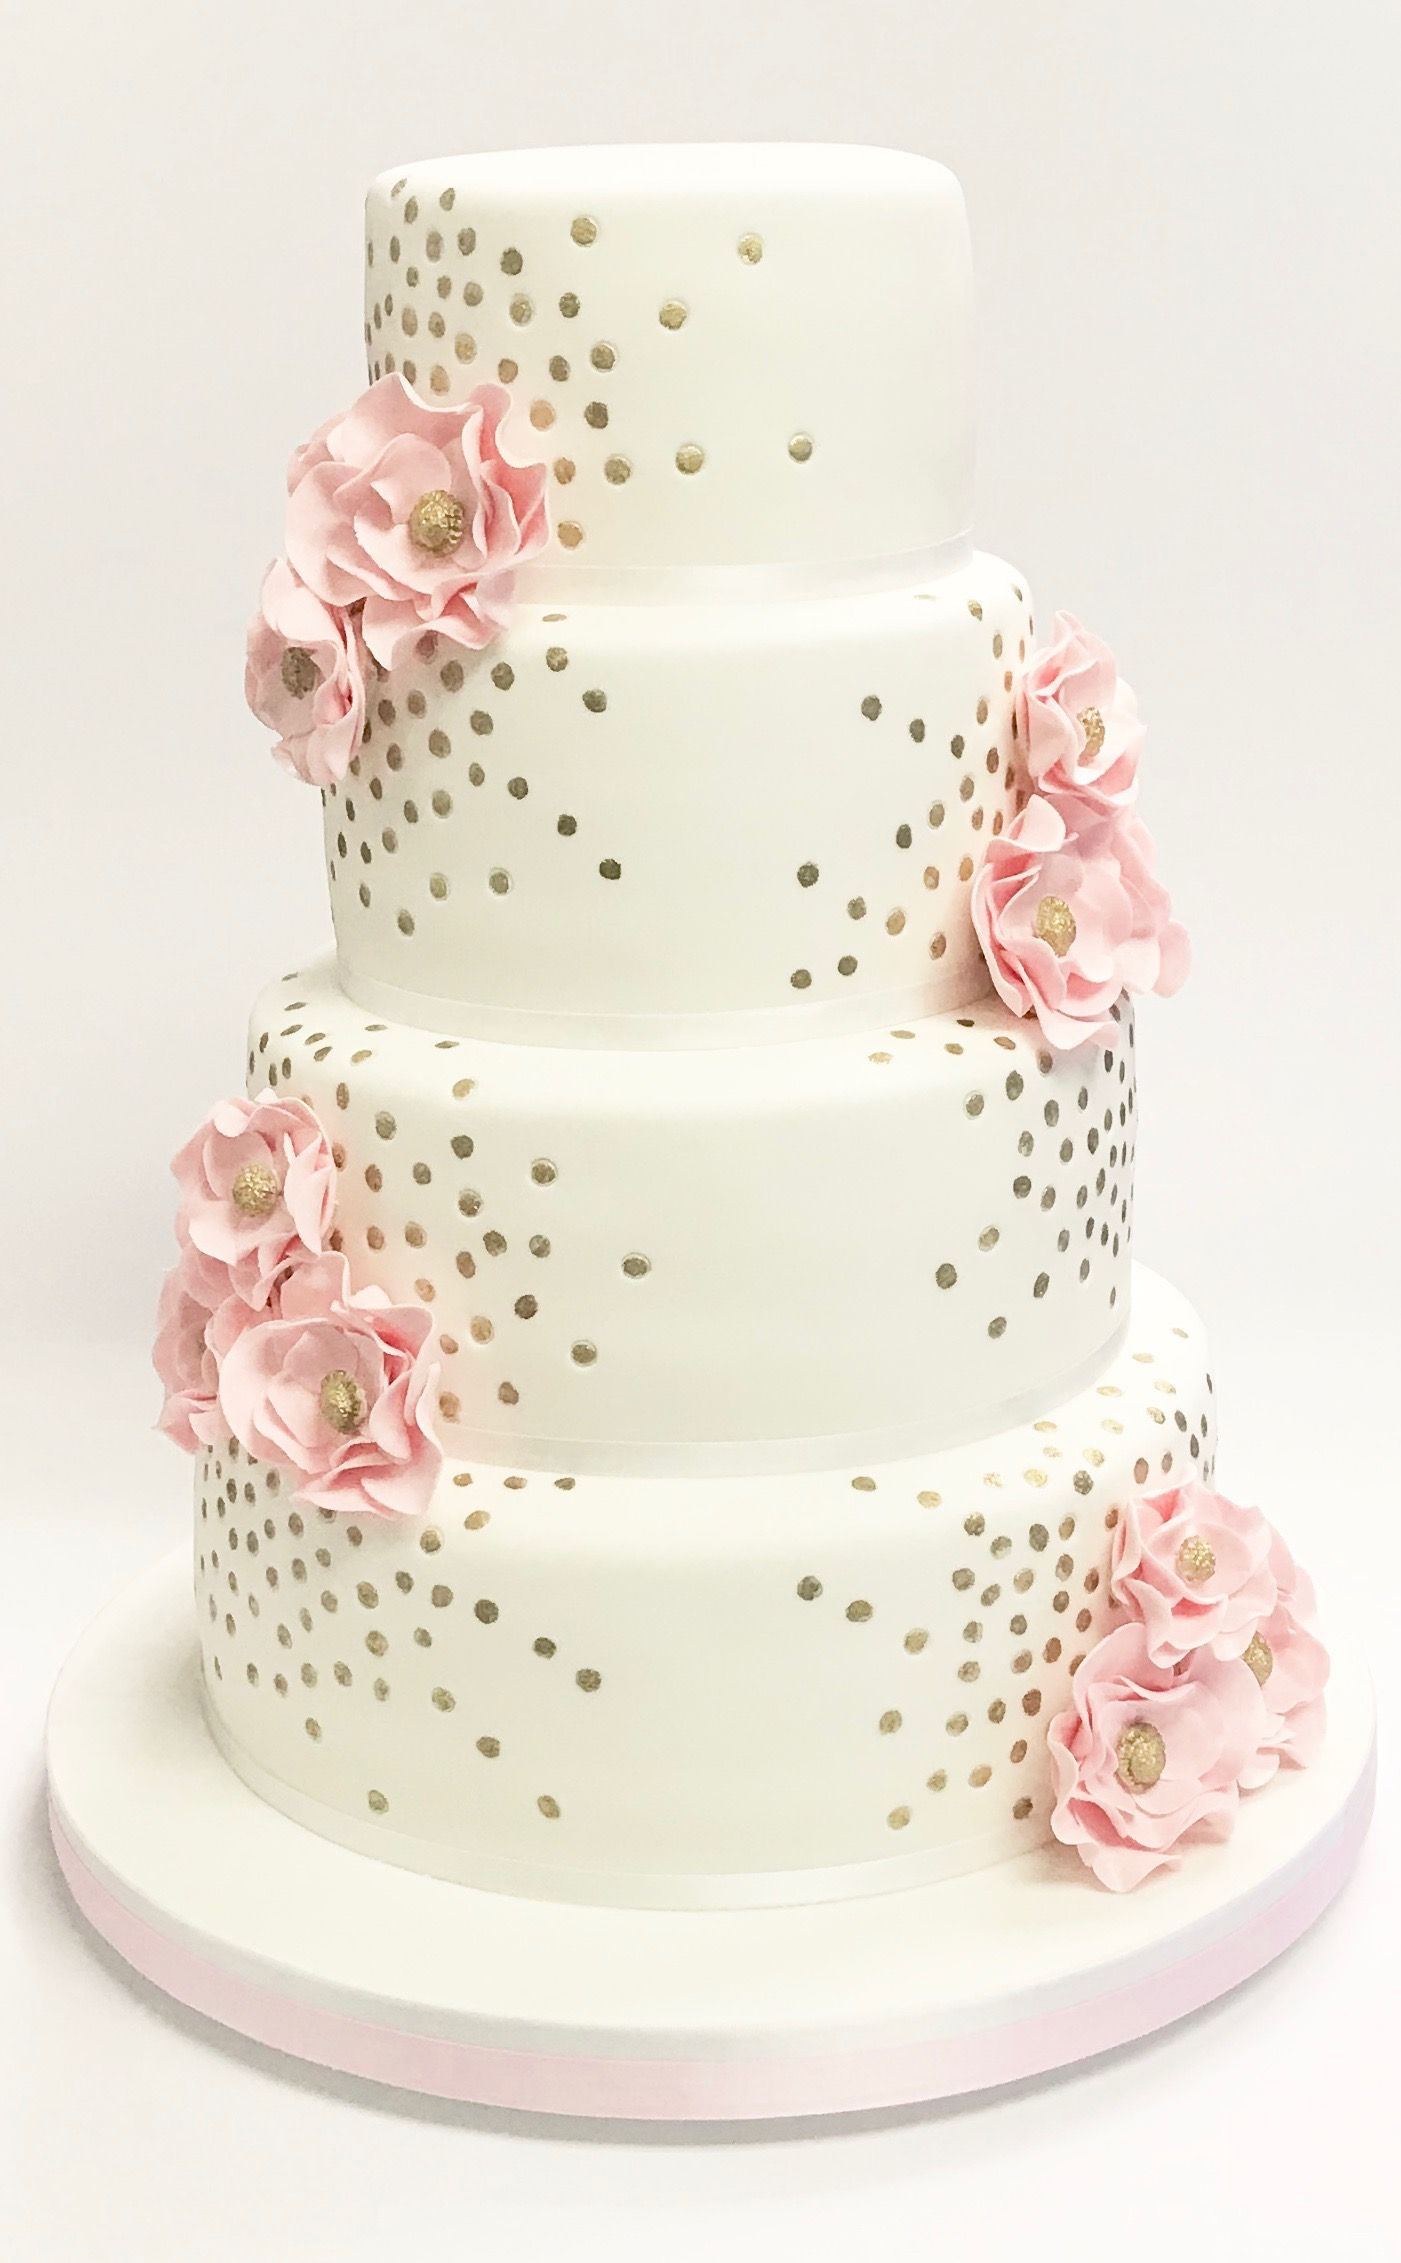 4 Tier Wedding Cake With Gold Sequins And Pink Sugar Flowers